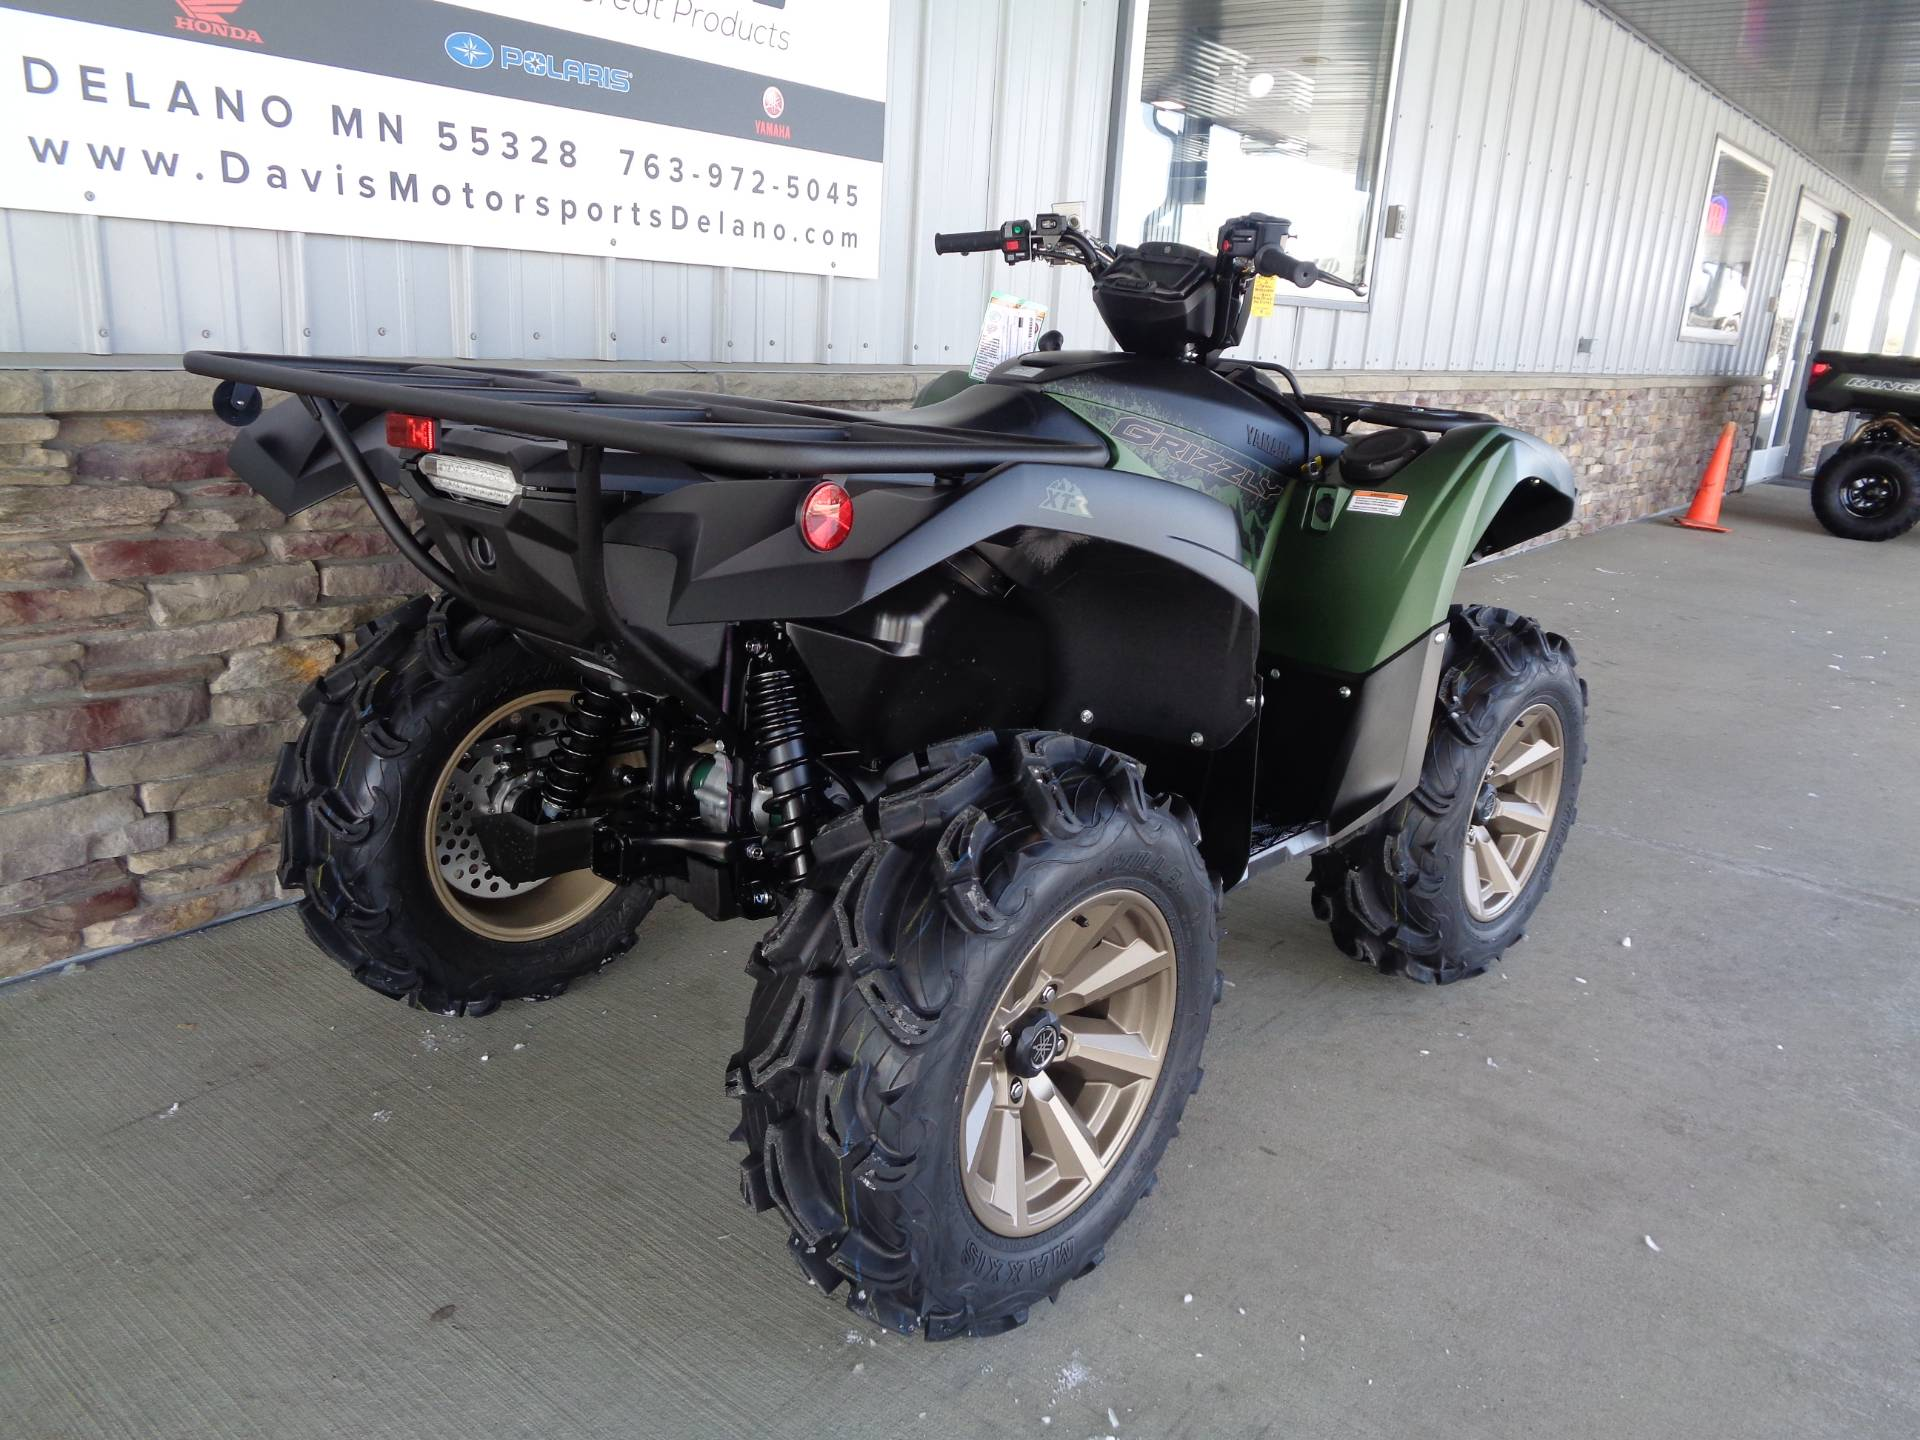 2021 Yamaha Grizzly EPS XT-R in Delano, Minnesota - Photo 5